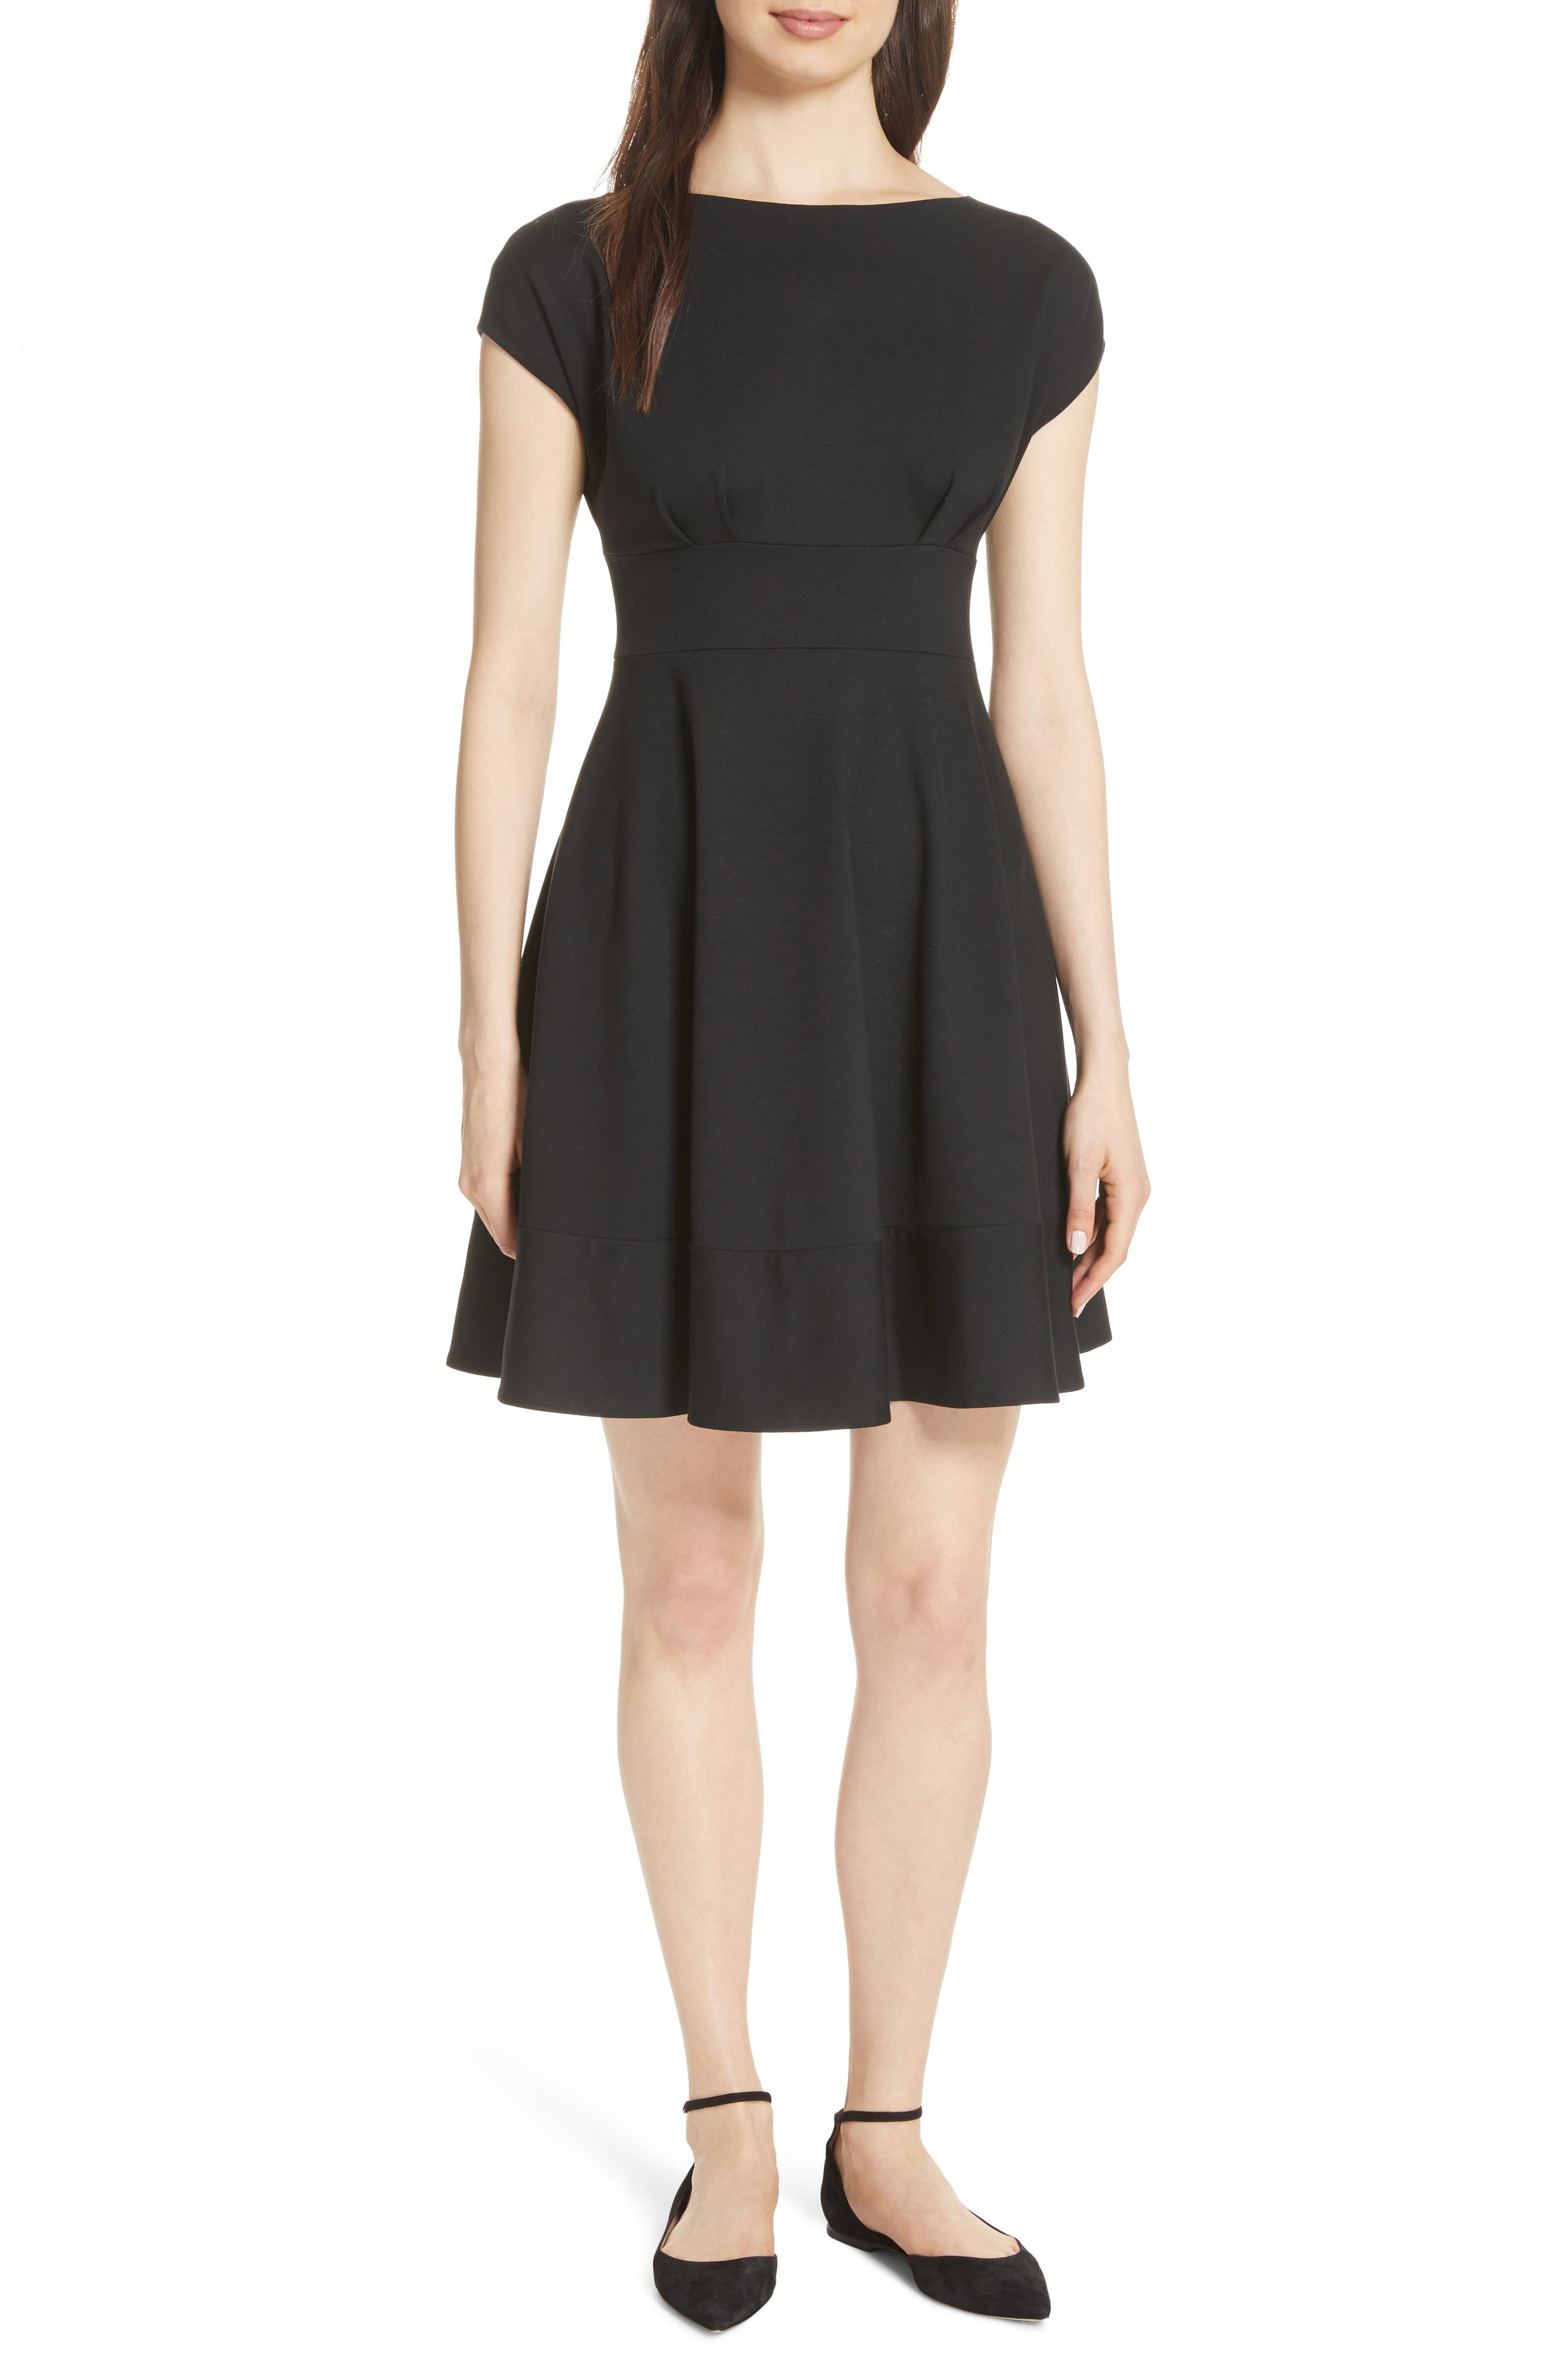 KATE SPADE NEW YORK ponte fiorella fit & flare dress, Main, color, BLACK